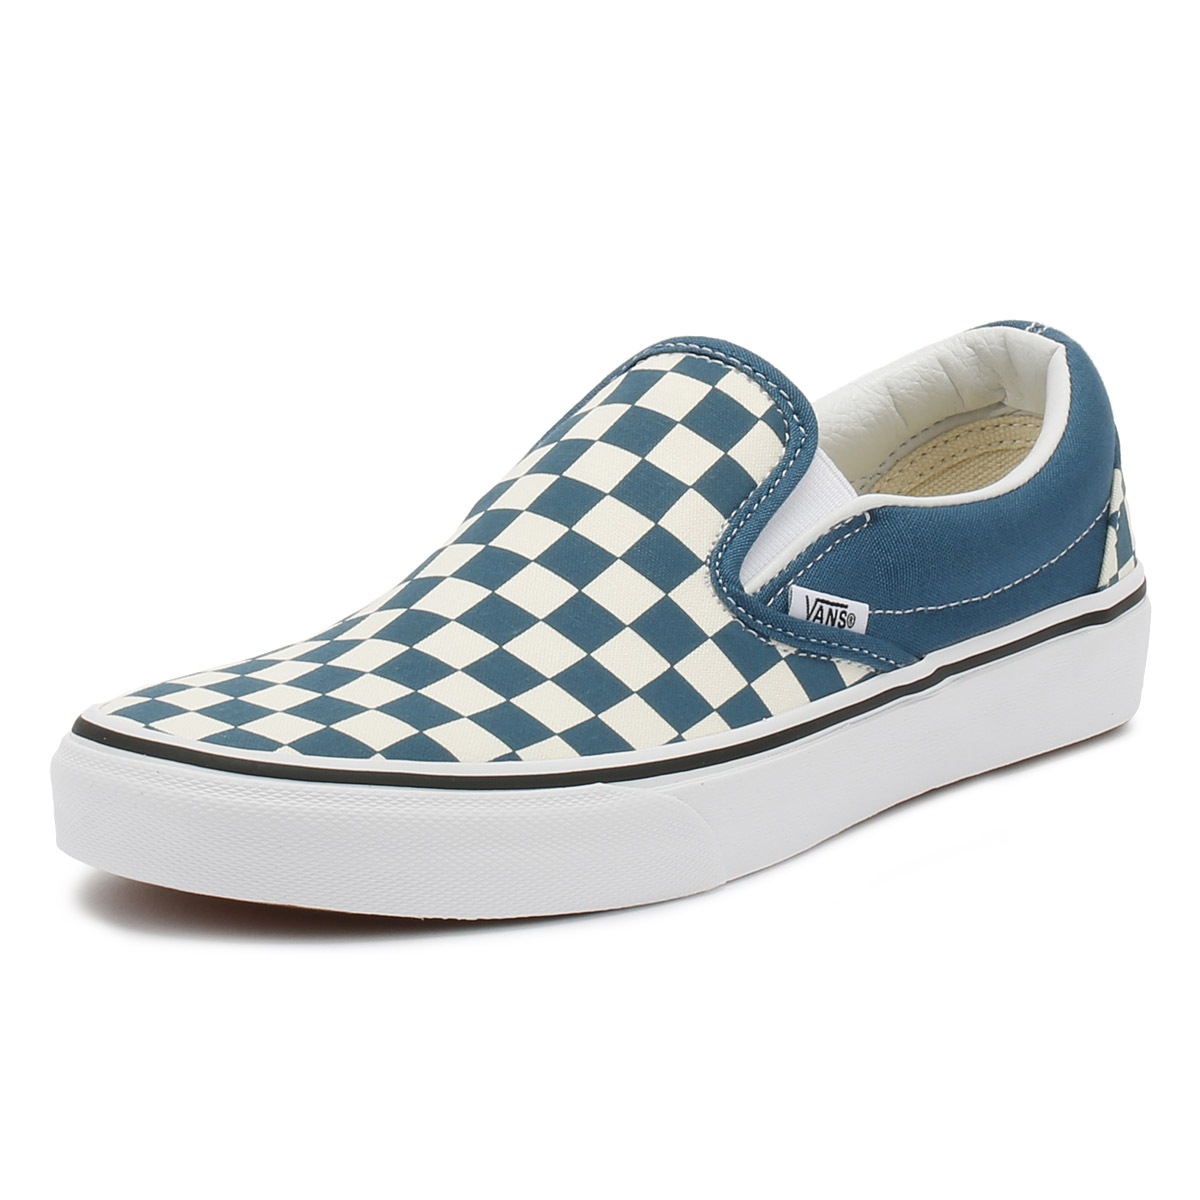 3efd42e8aac Details about Vans Unisex Trainers Corsair   True White Checkerboard  Classic Slip On Shoes